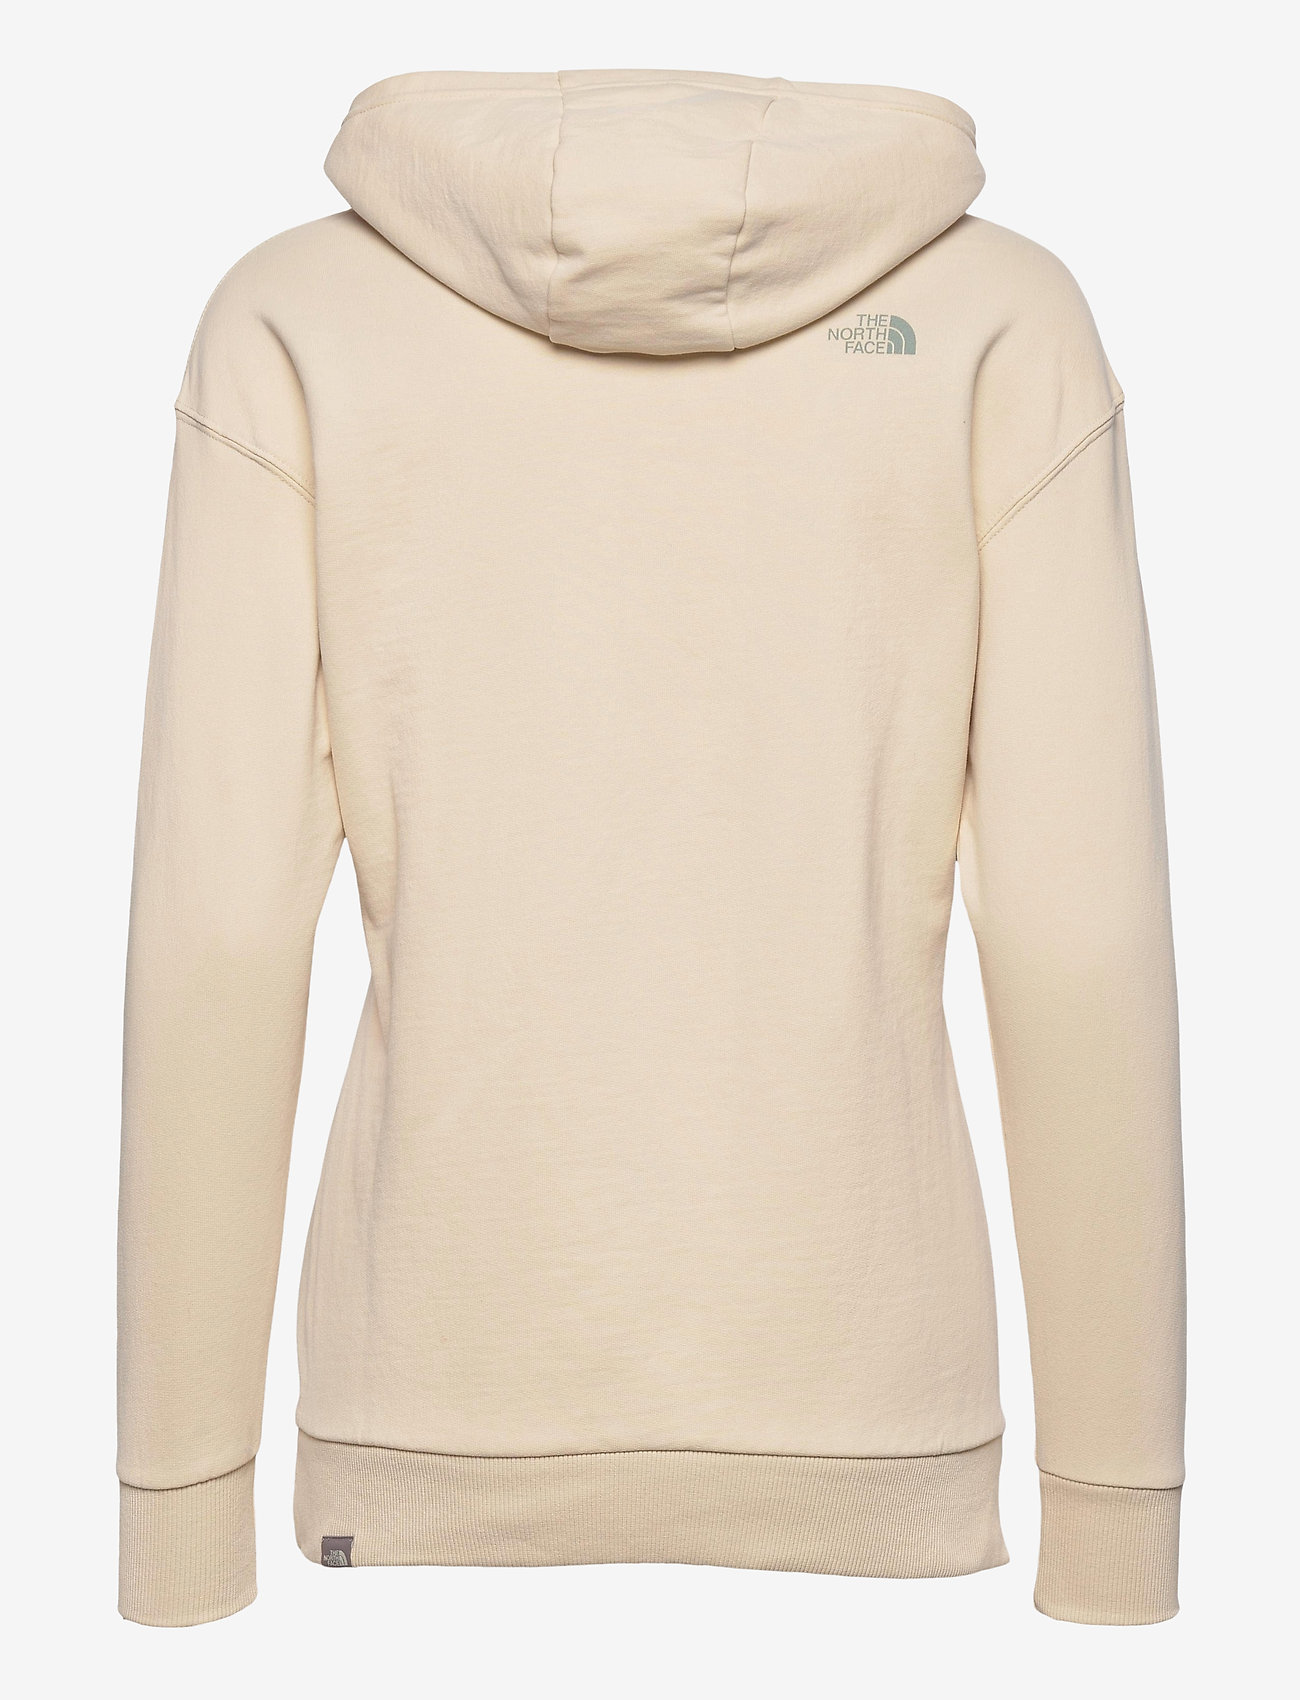 The North Face - W PUD HOODIE - hættetrøjer - bleached sand - 1